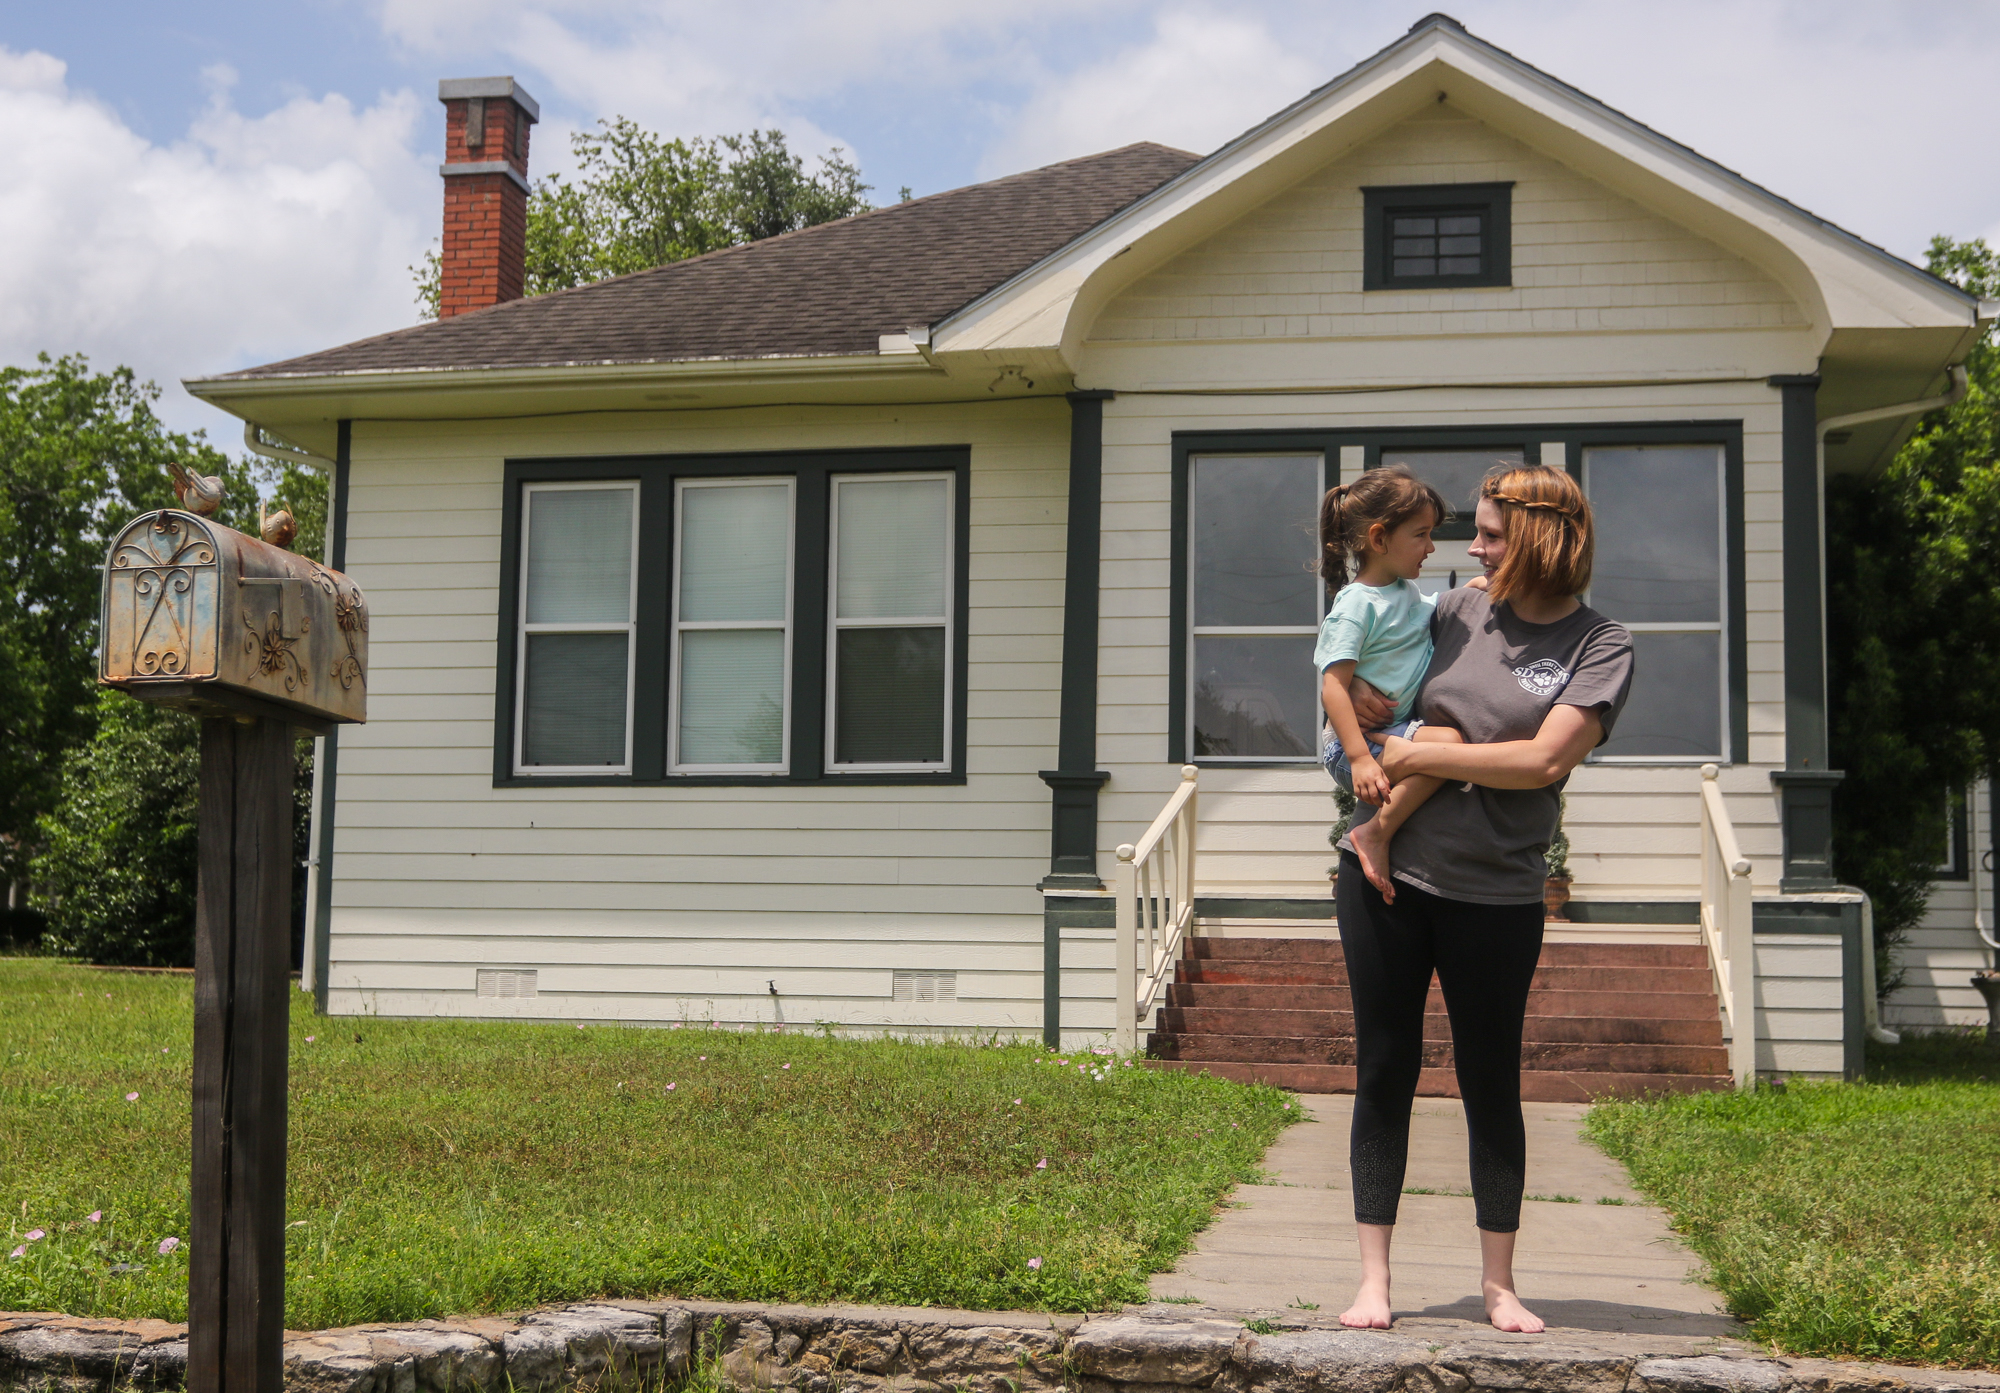 Brittany Cabrera, 25, holds her daughter Penny, 3, in front of their Goliad, Texas, home on May 2, 2019. The pair plans to permanently relocate to Colorado in June alongside Cabrera's husband and parents to seek medical marijuana treatments for Penny's seizures.